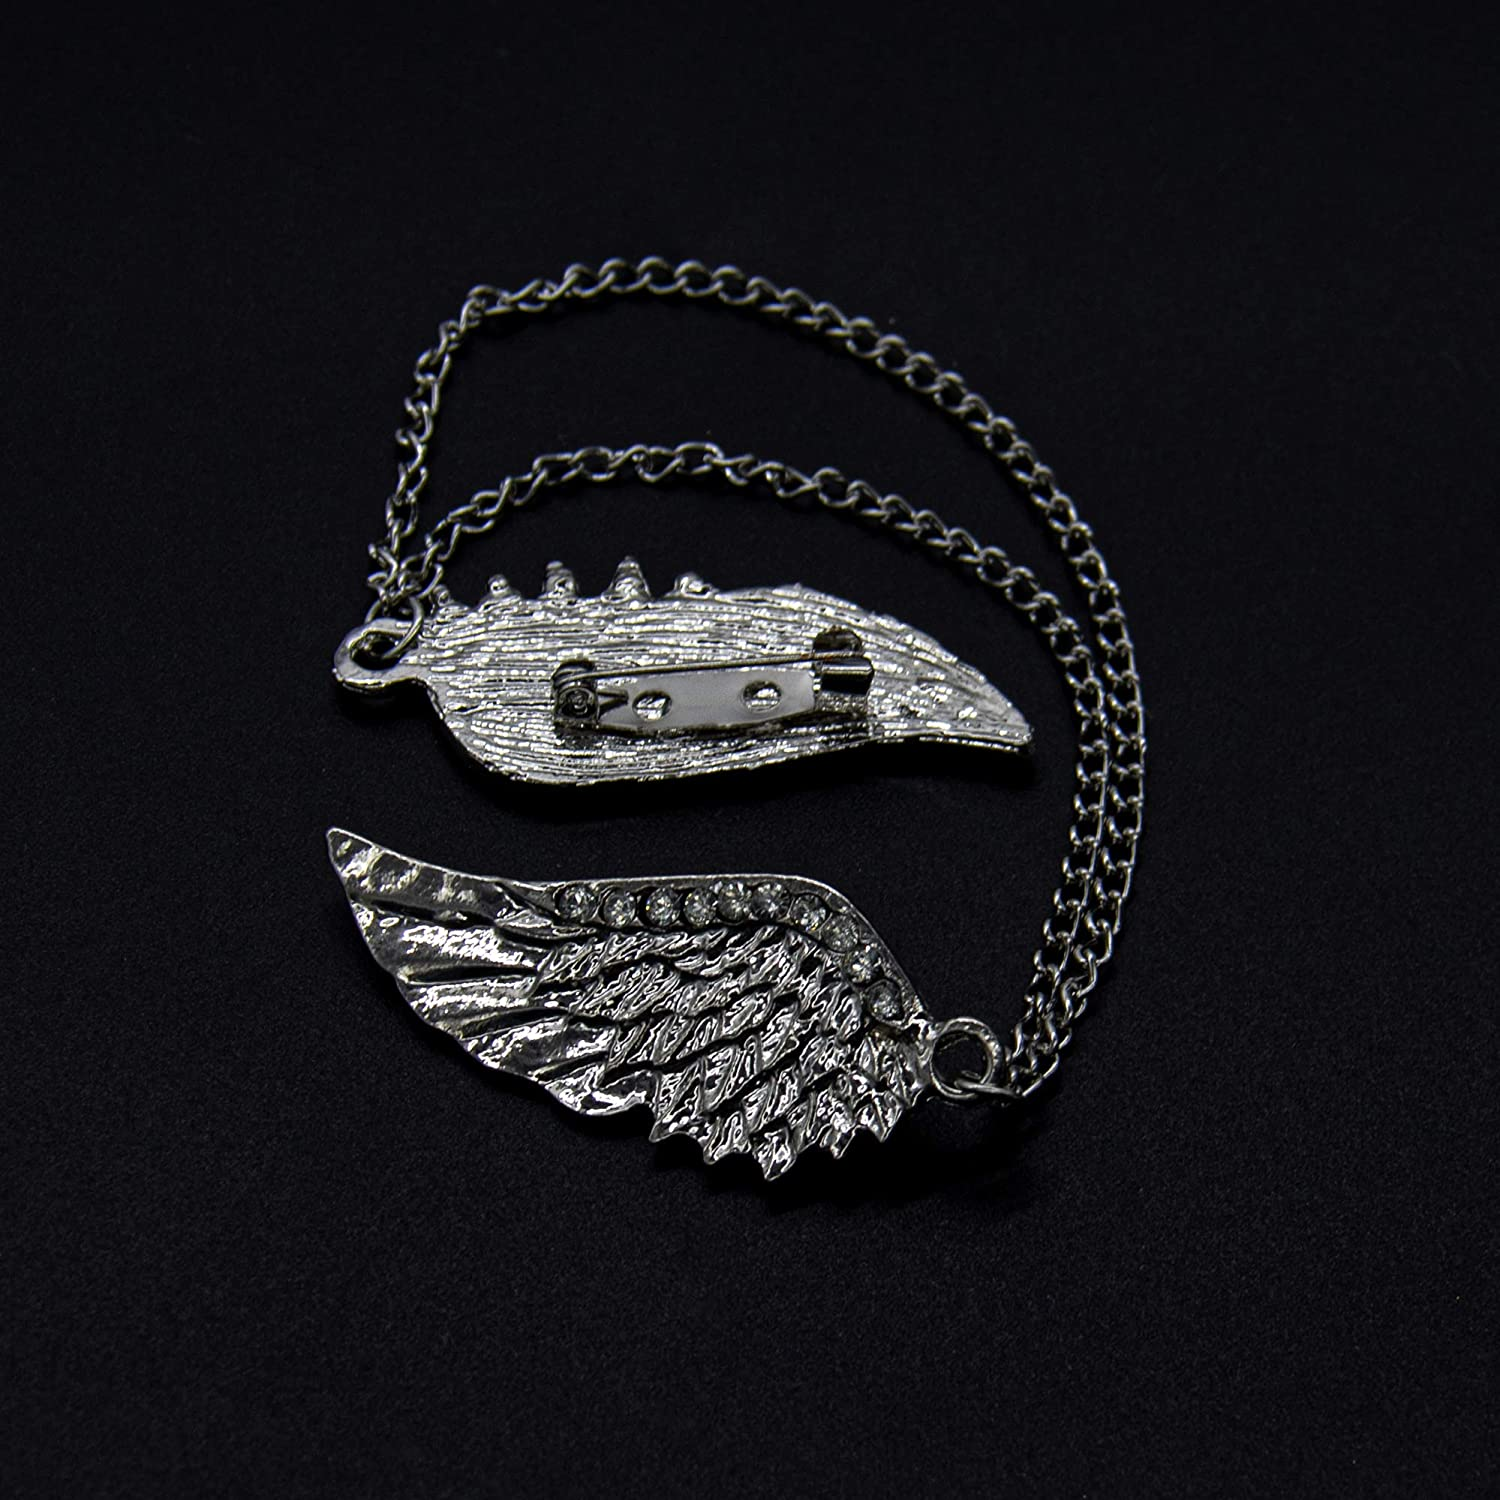 AUEAR Creative Angel Wing Brooch Lapel Pin Crystal Hanging Chain Tassel Men for Shirt Cardigan Collar Holder Decoration Accessories Silver